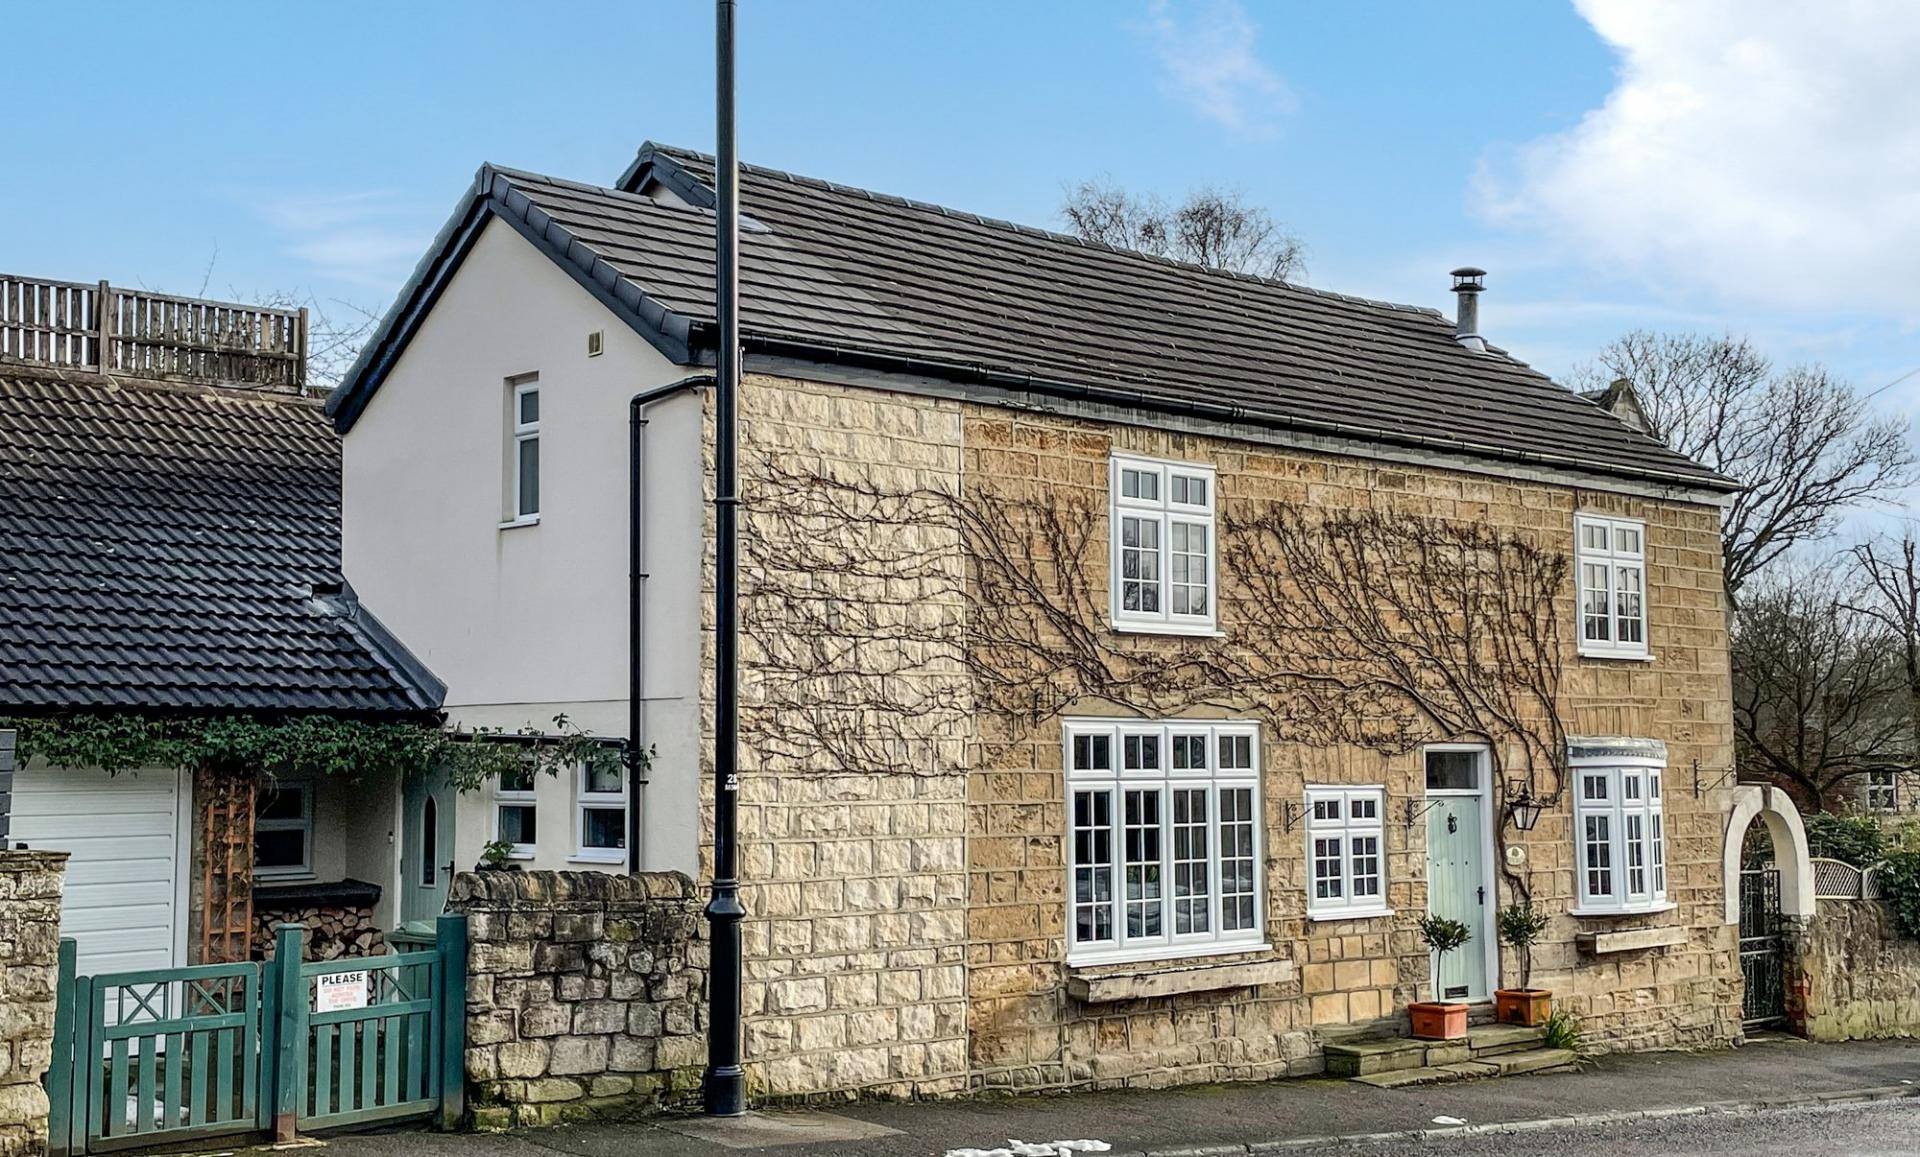 West Yorkshire stone built charming village cottage with blue door.